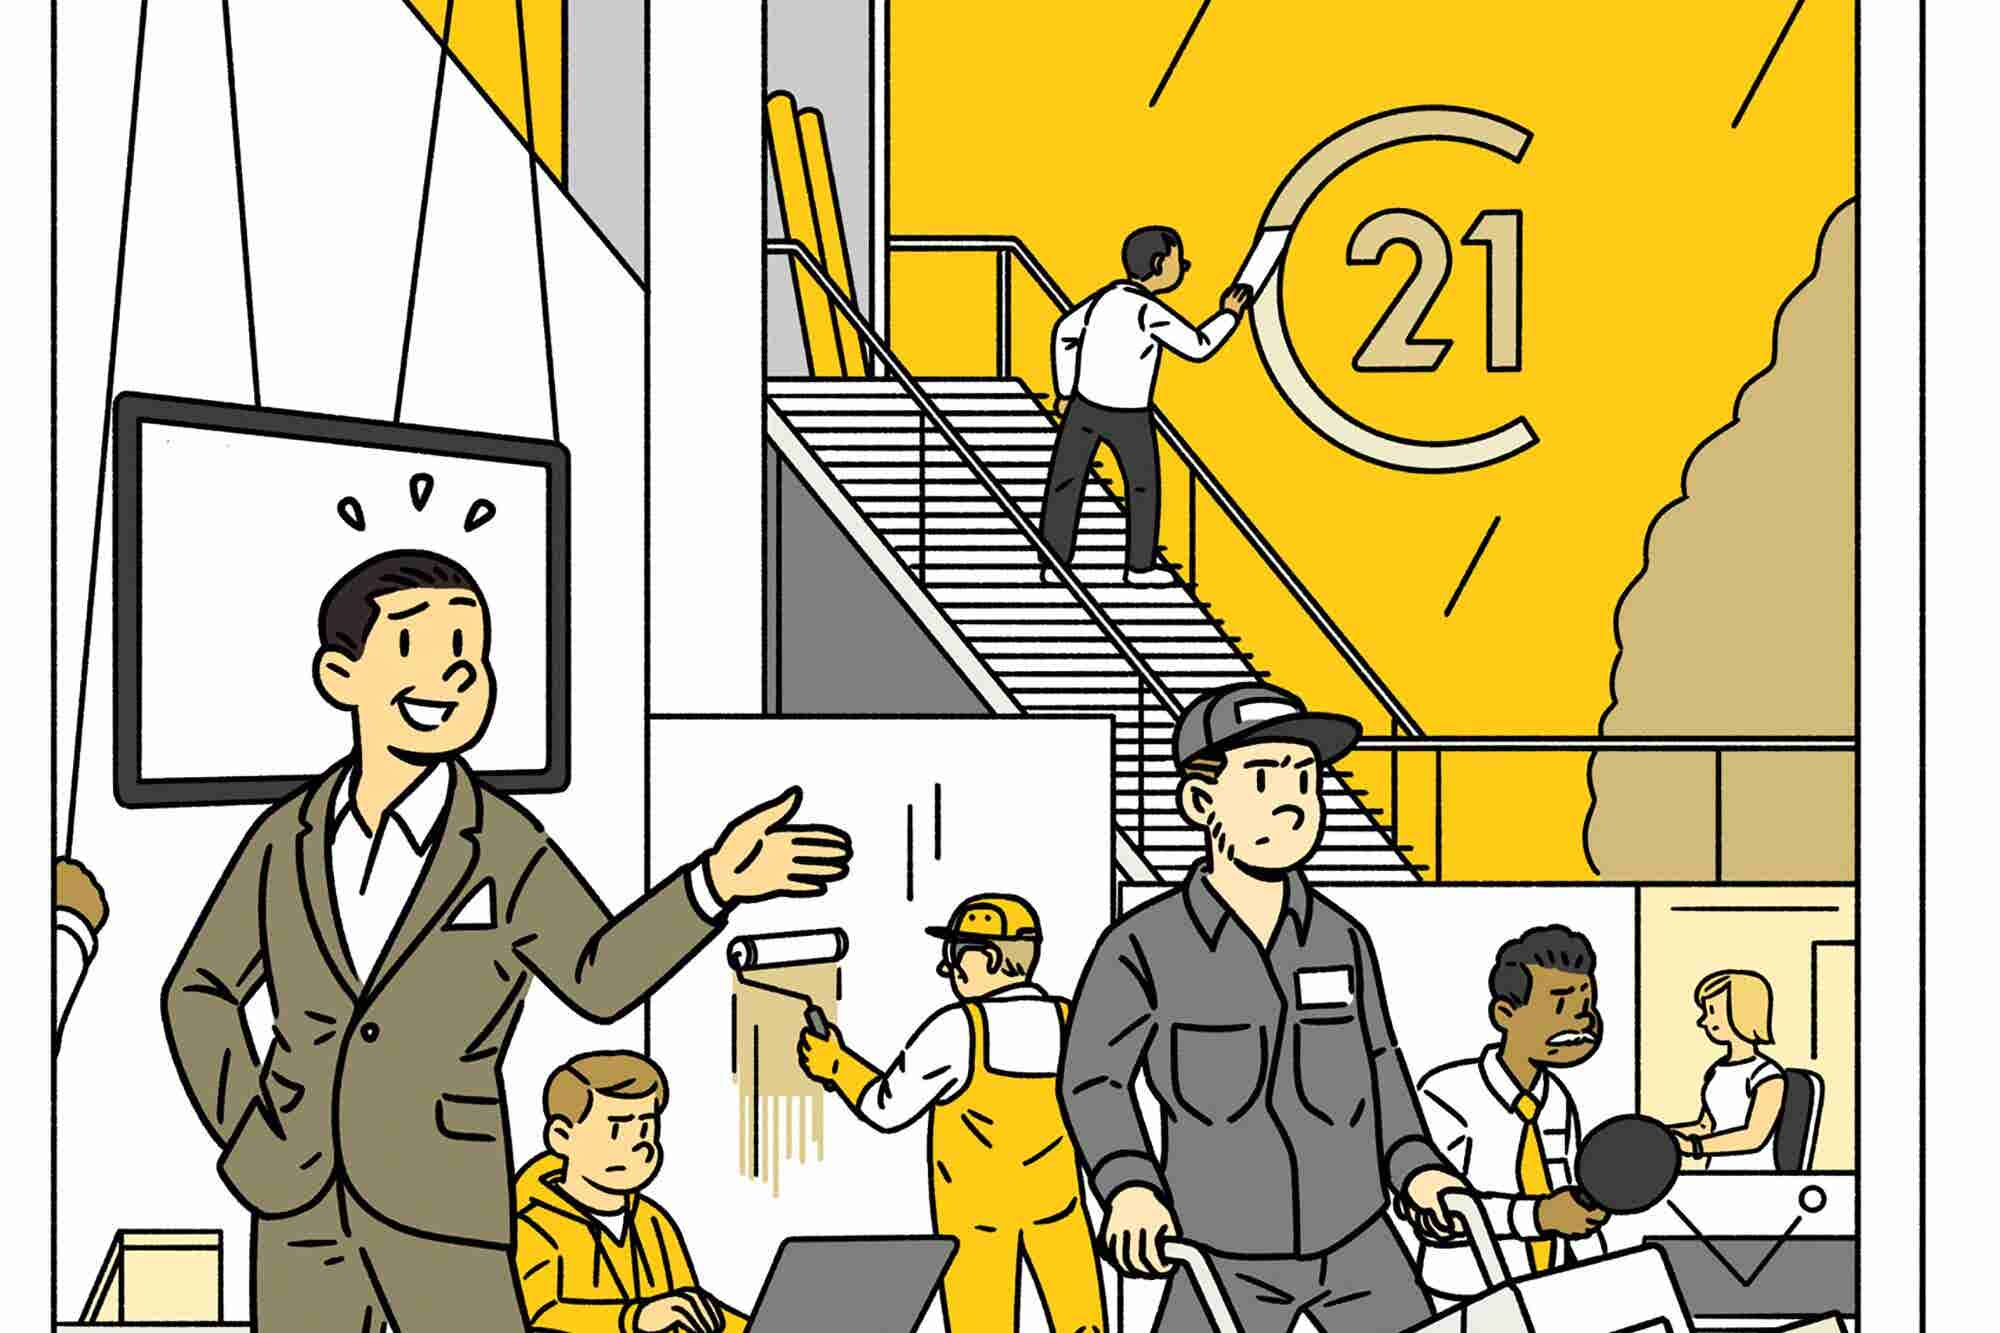 Old Company. Troubled Industry. Inside the Effort to Reboot Century 21, the Real Estate Giant.